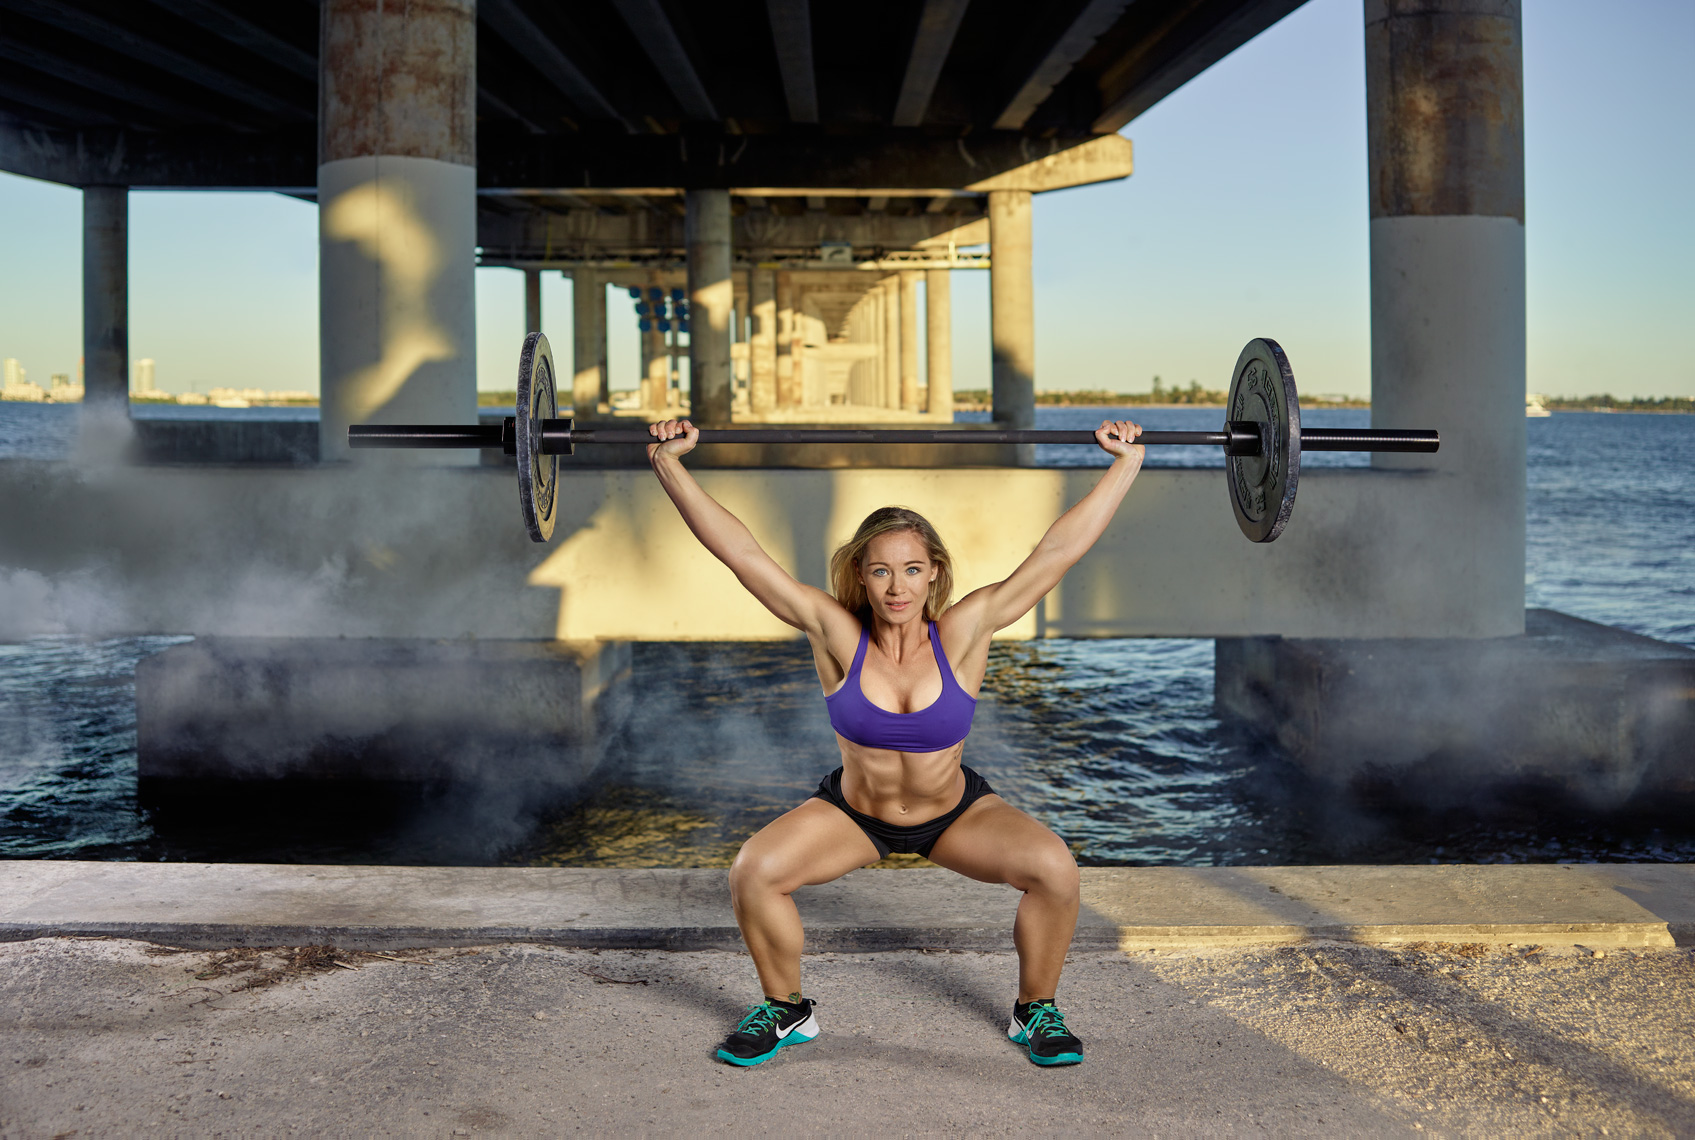 Sports_fitness_photographer_Miami_Jeffery_Salter_05